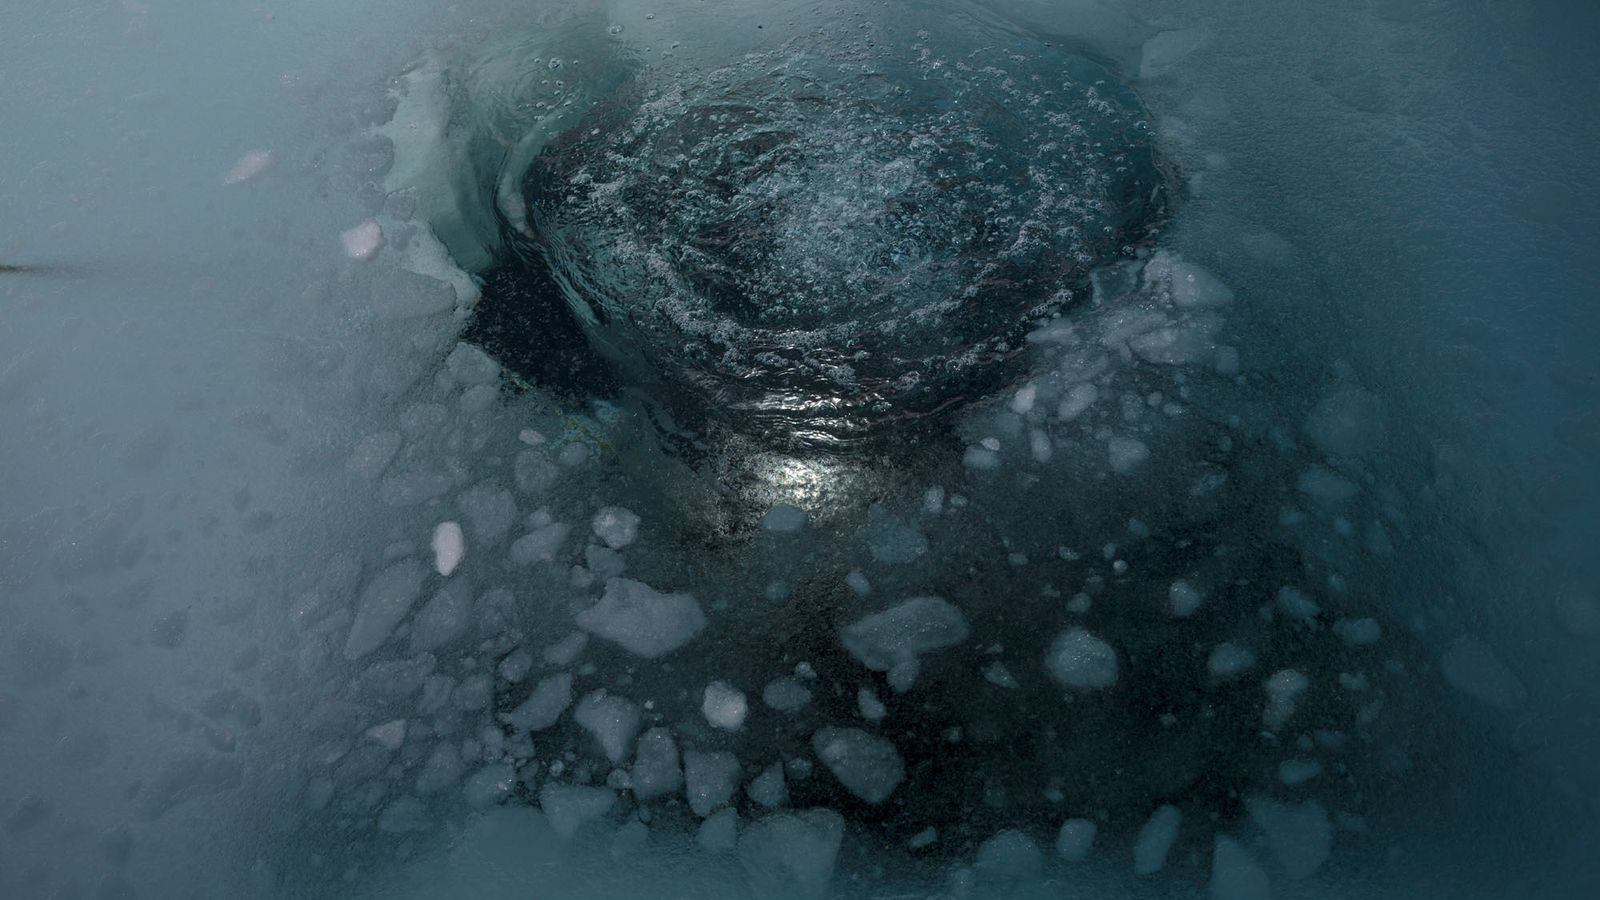 Small holes in the ice are carved to allow the scientists to dive below.